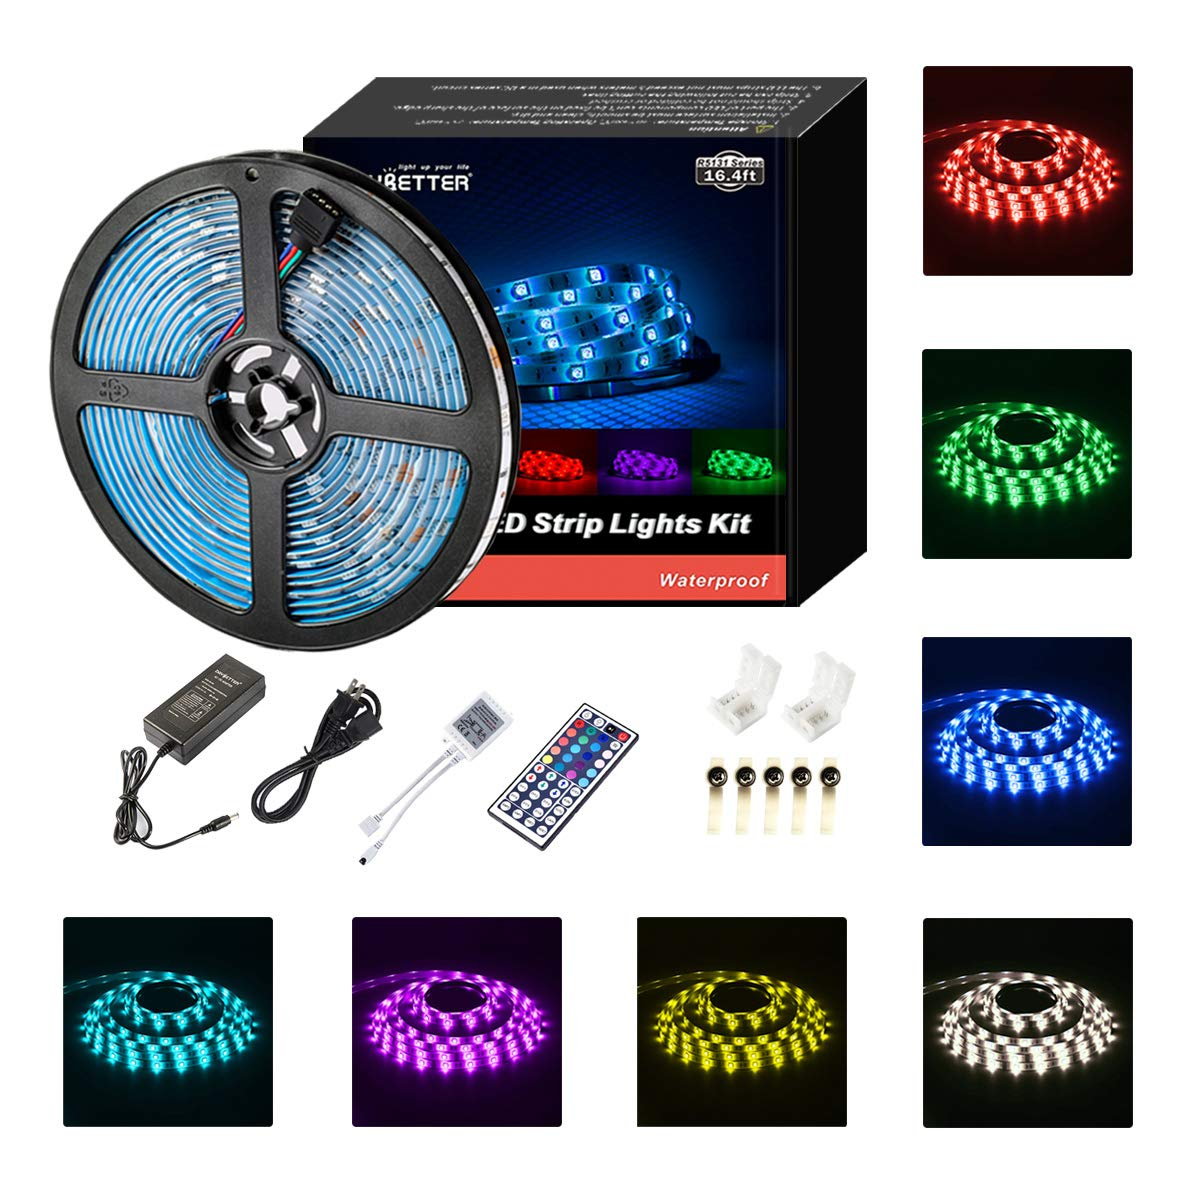 Led Strip Lights Waterproof 16.4ft 5m Waterproof Flexible Color Changing RGB SMD 5050 150leds LED Strip Lighting Kit with 44 Keys IR Remote Controller and 12V Power Supply DAYBETTER